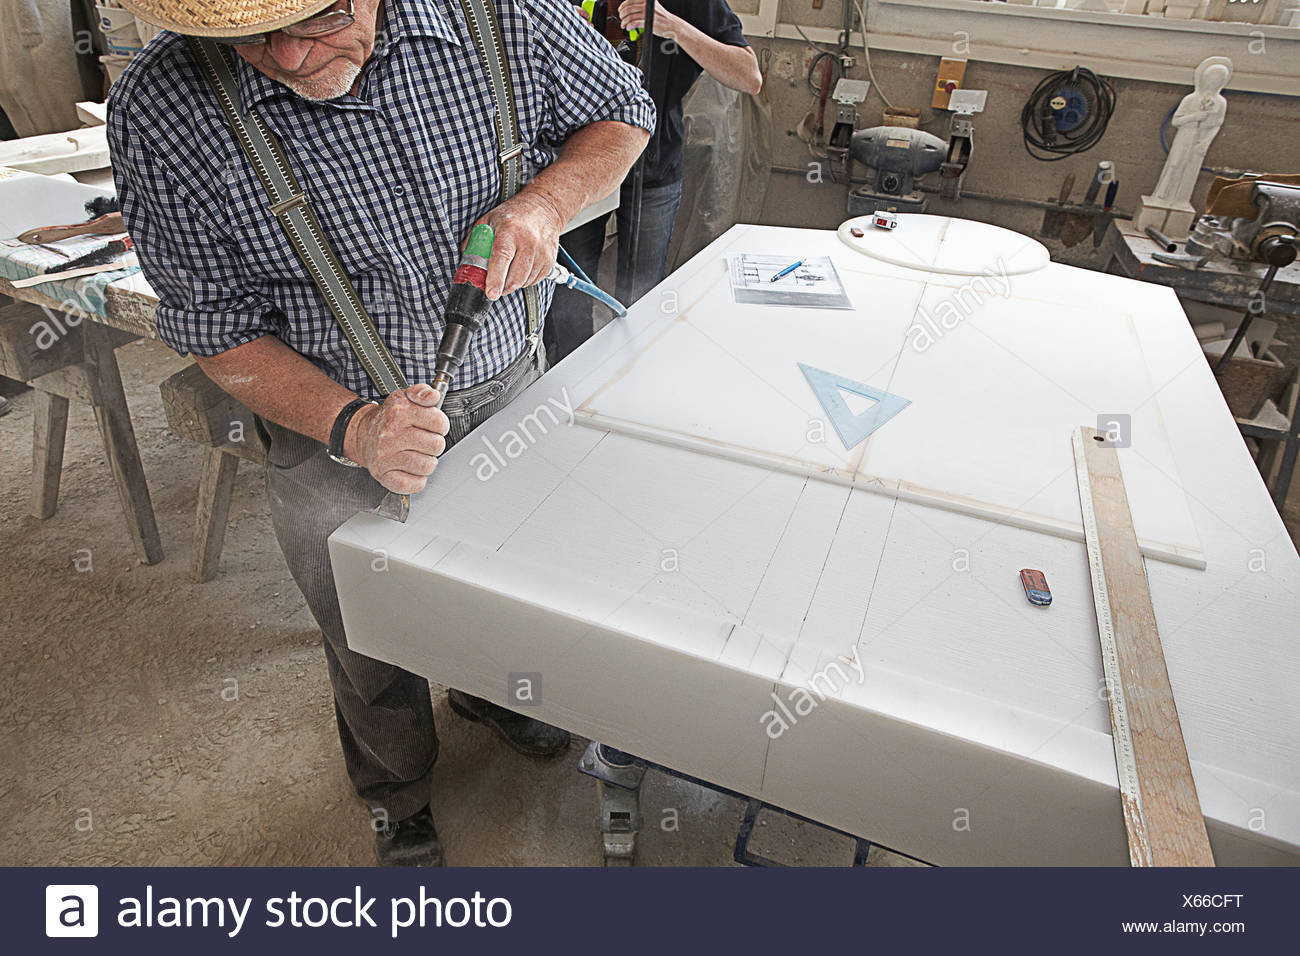 Worker chiseling slab of stone - Stock Image